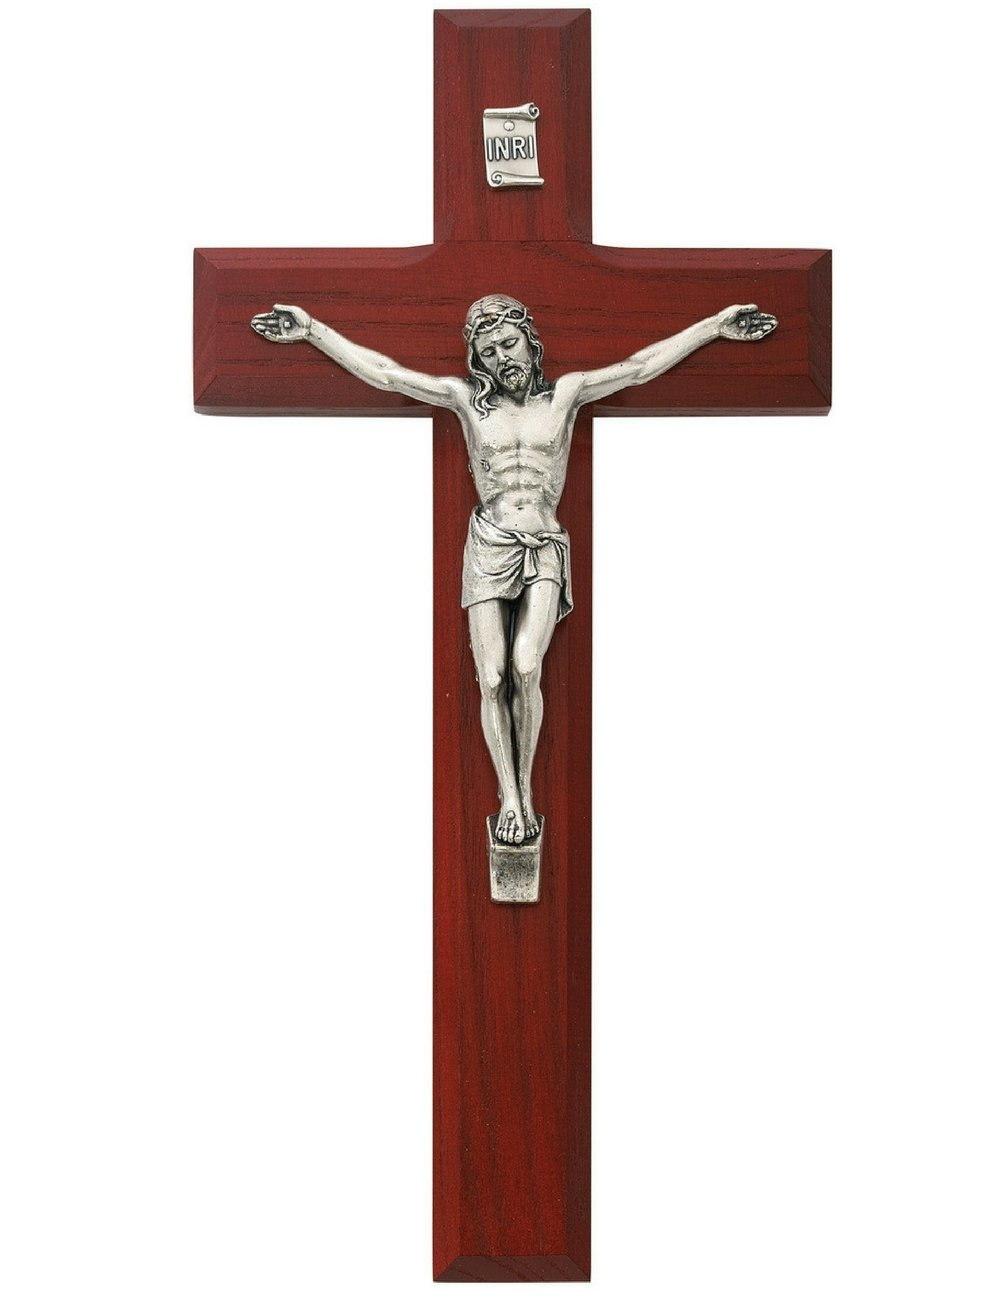 All Patron Saints Beveled Cherry Wood Wall Crucifix Cross with Silver Color Corpus and INRI 8 Inches